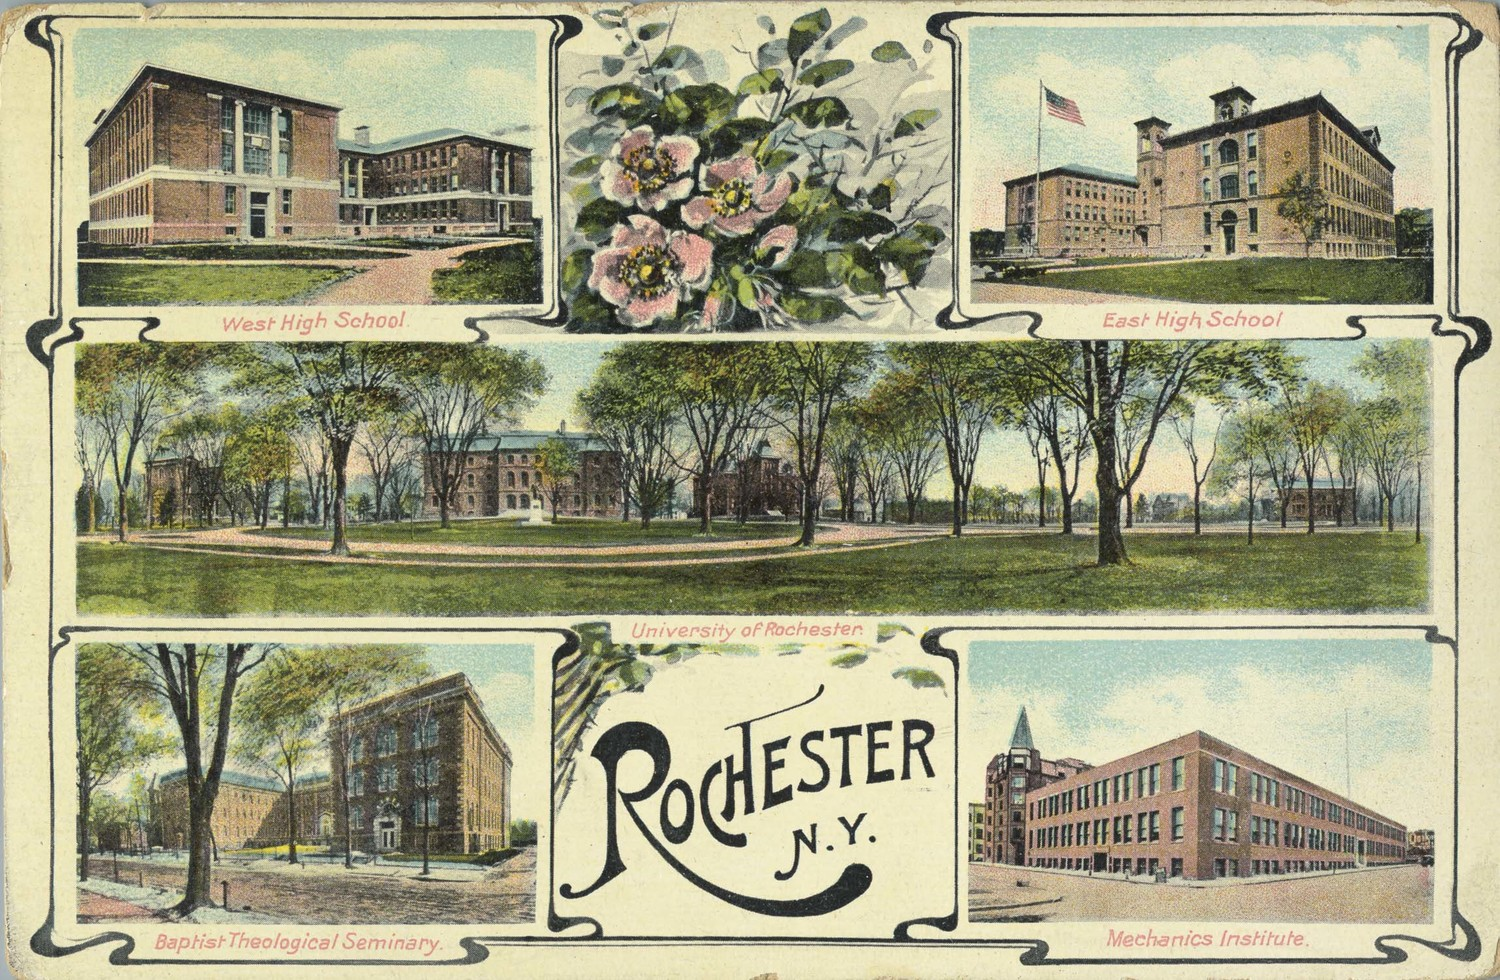 Multi-view postcard depicting educational institutions in Rochester.